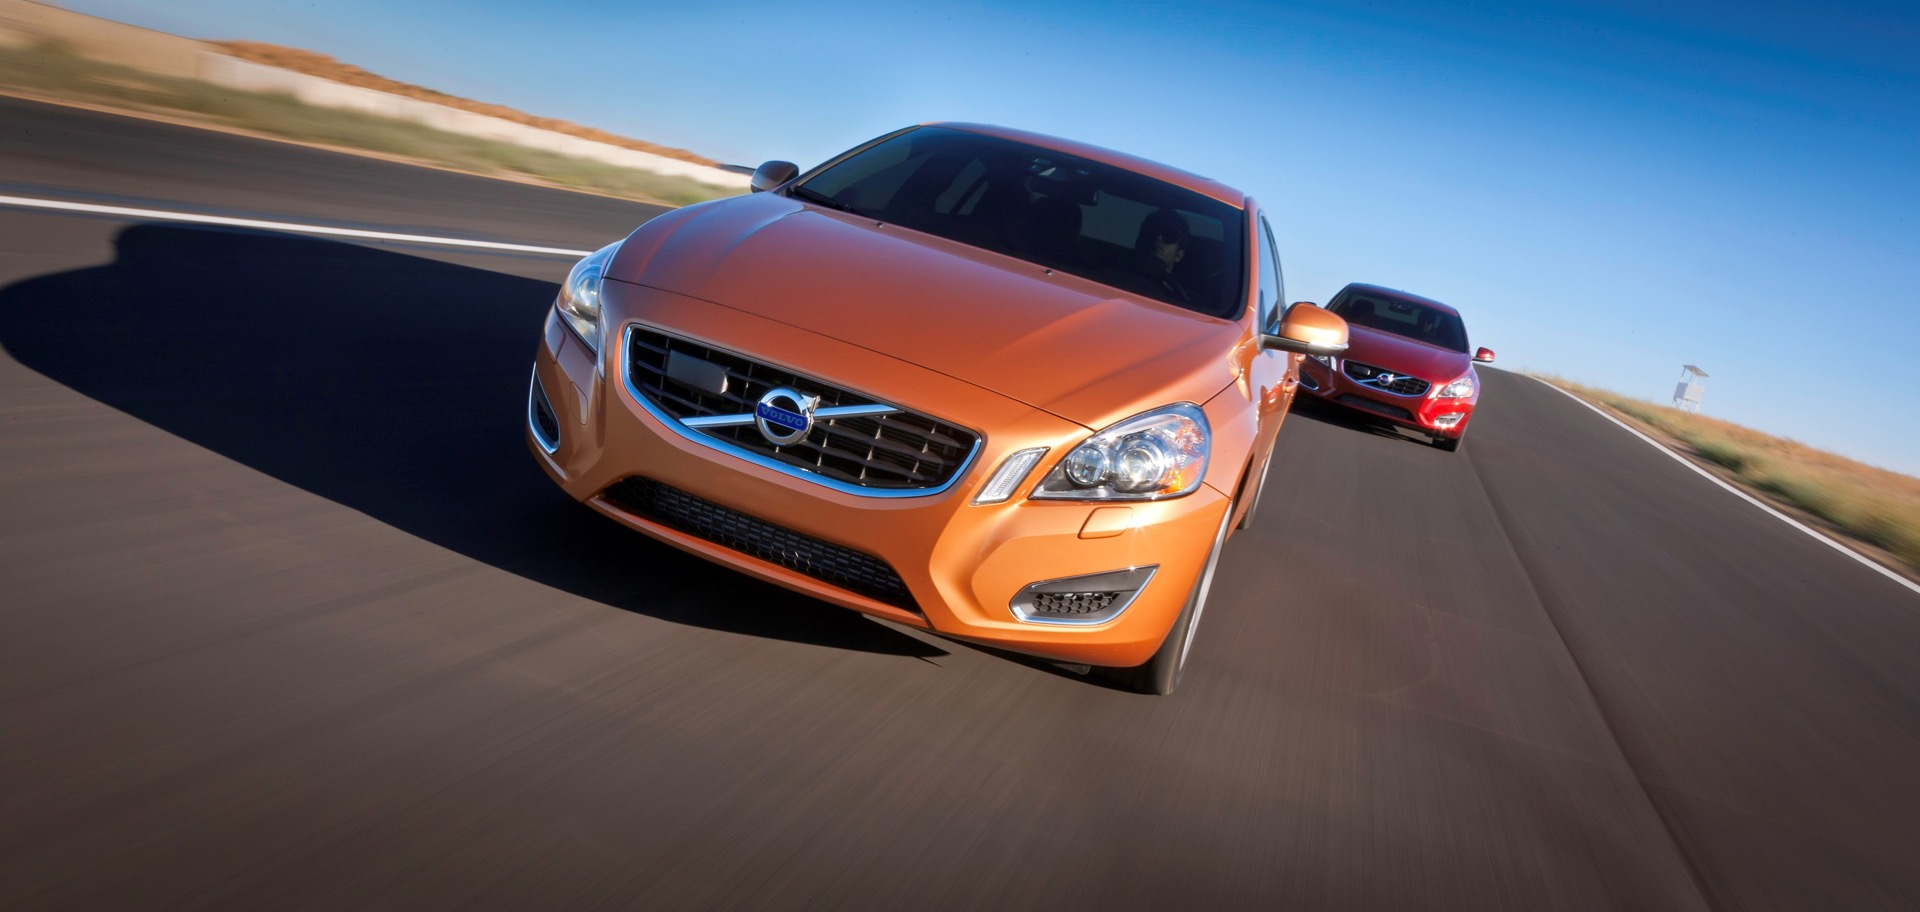 S60 T6 Awd Multi Car Driving Action01 -  Volvo